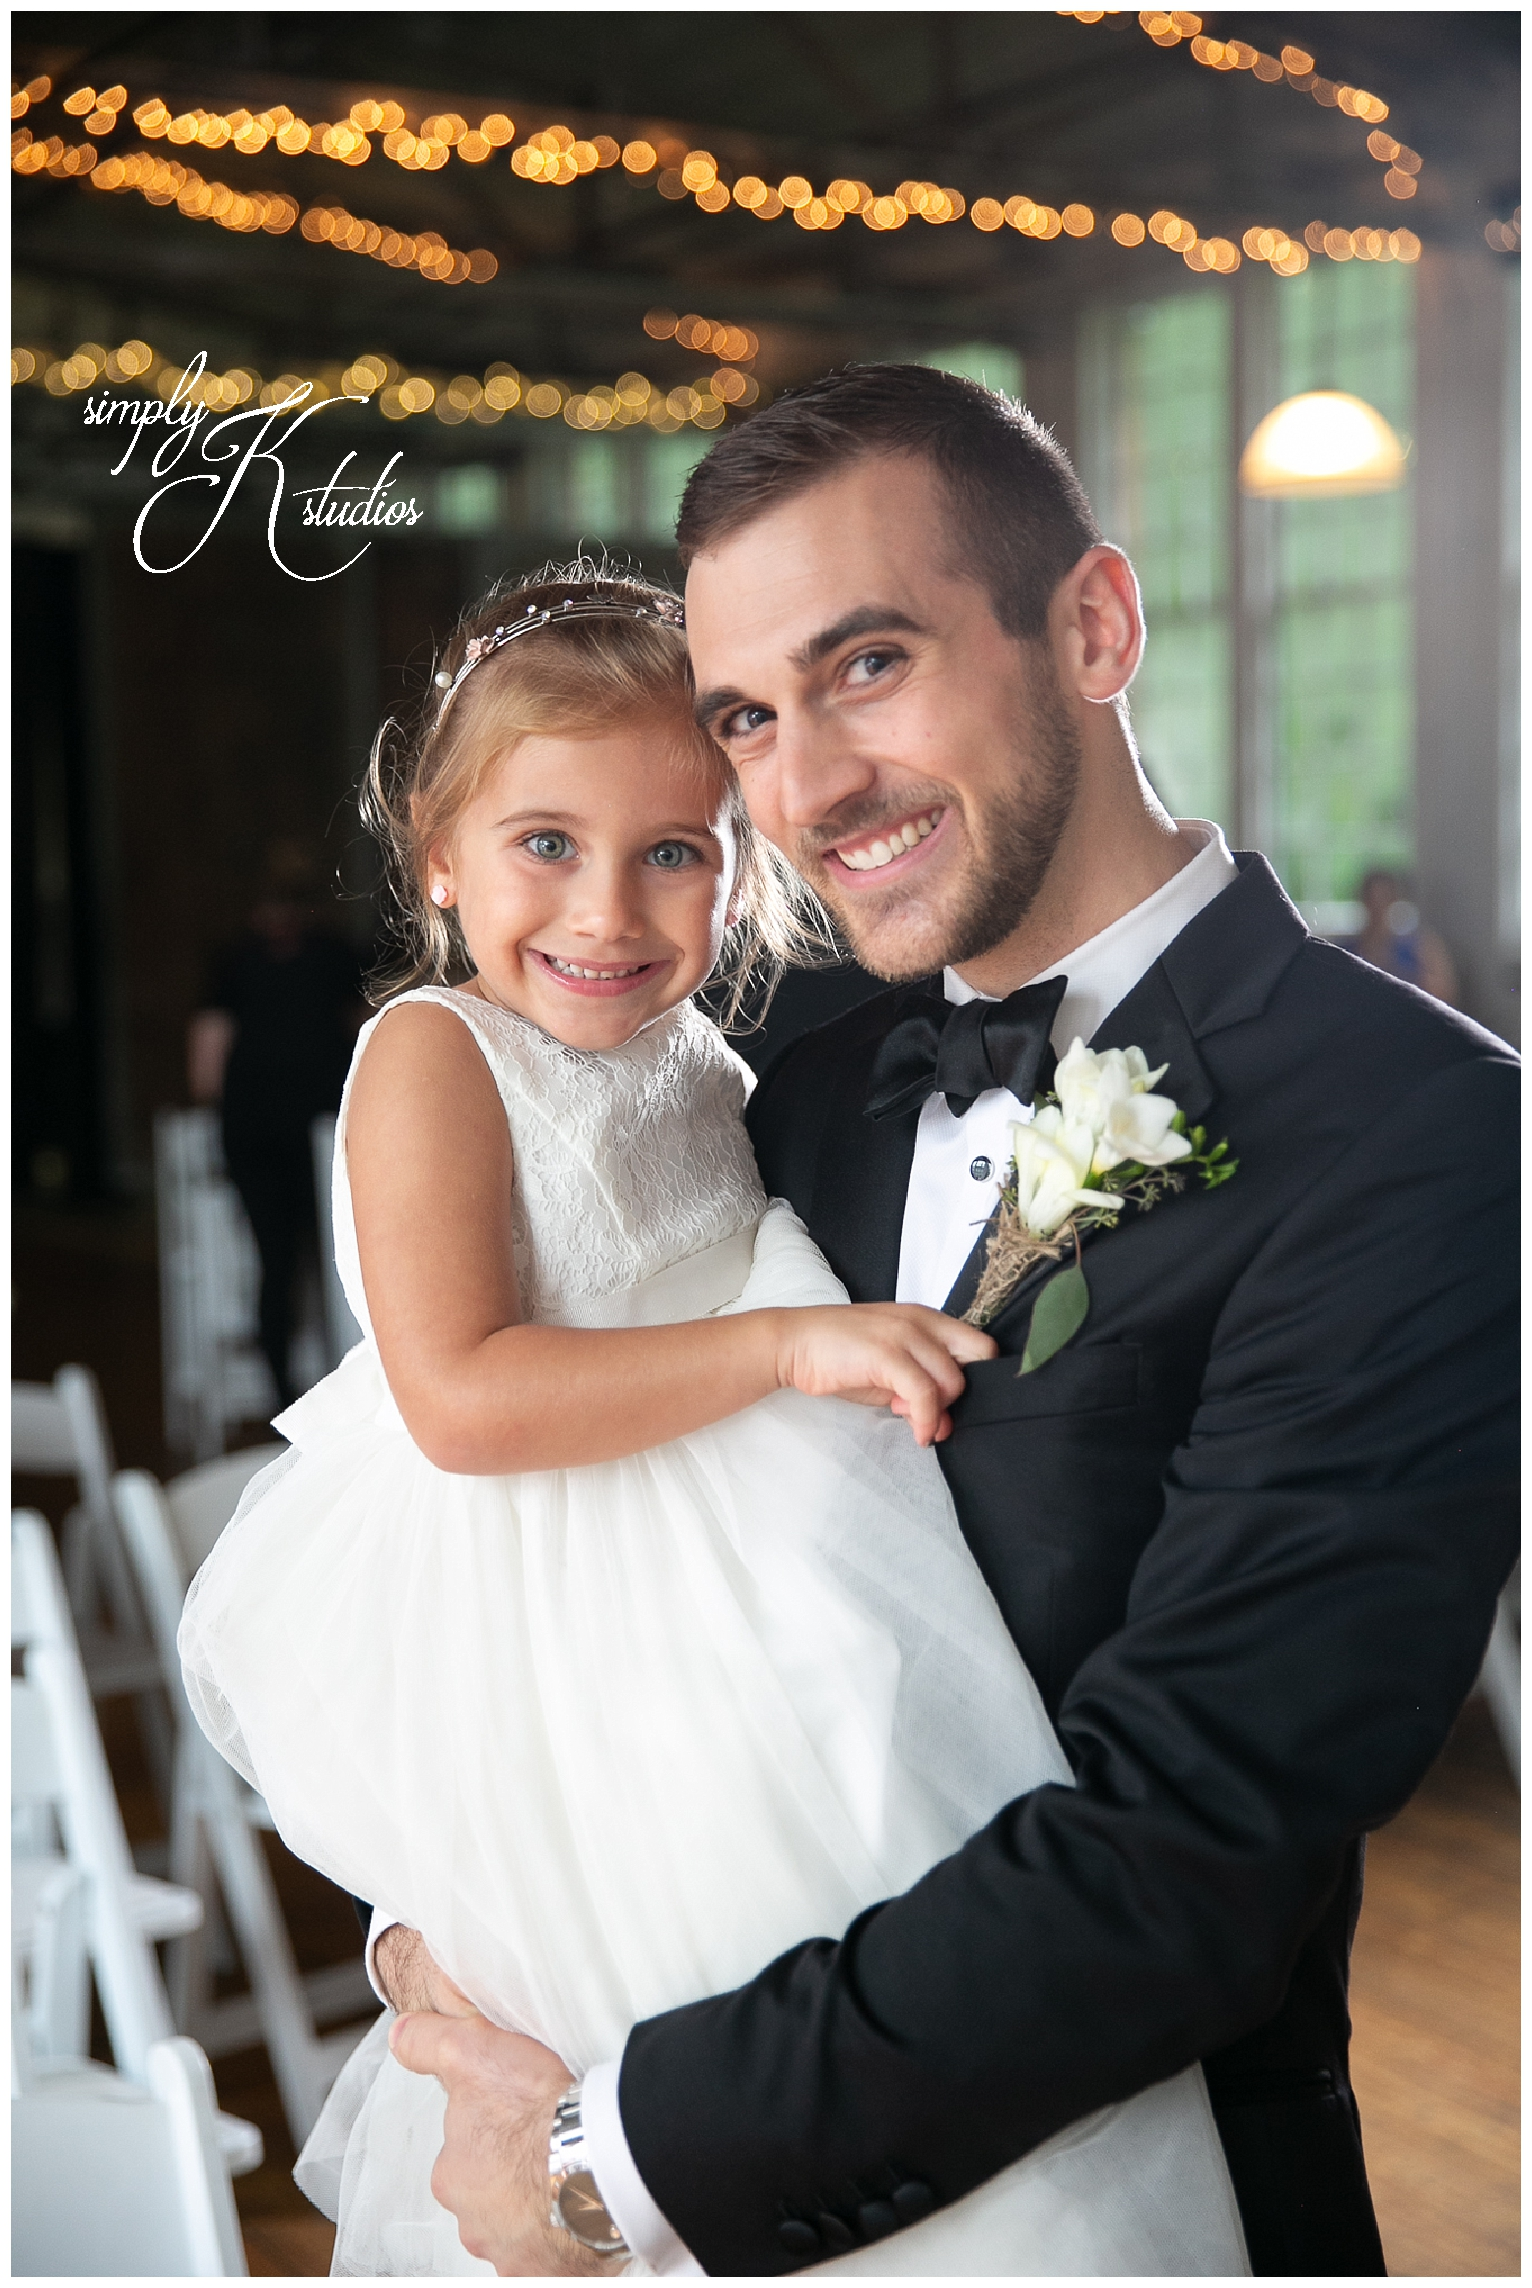 Indoor Wedding Photography.jpg